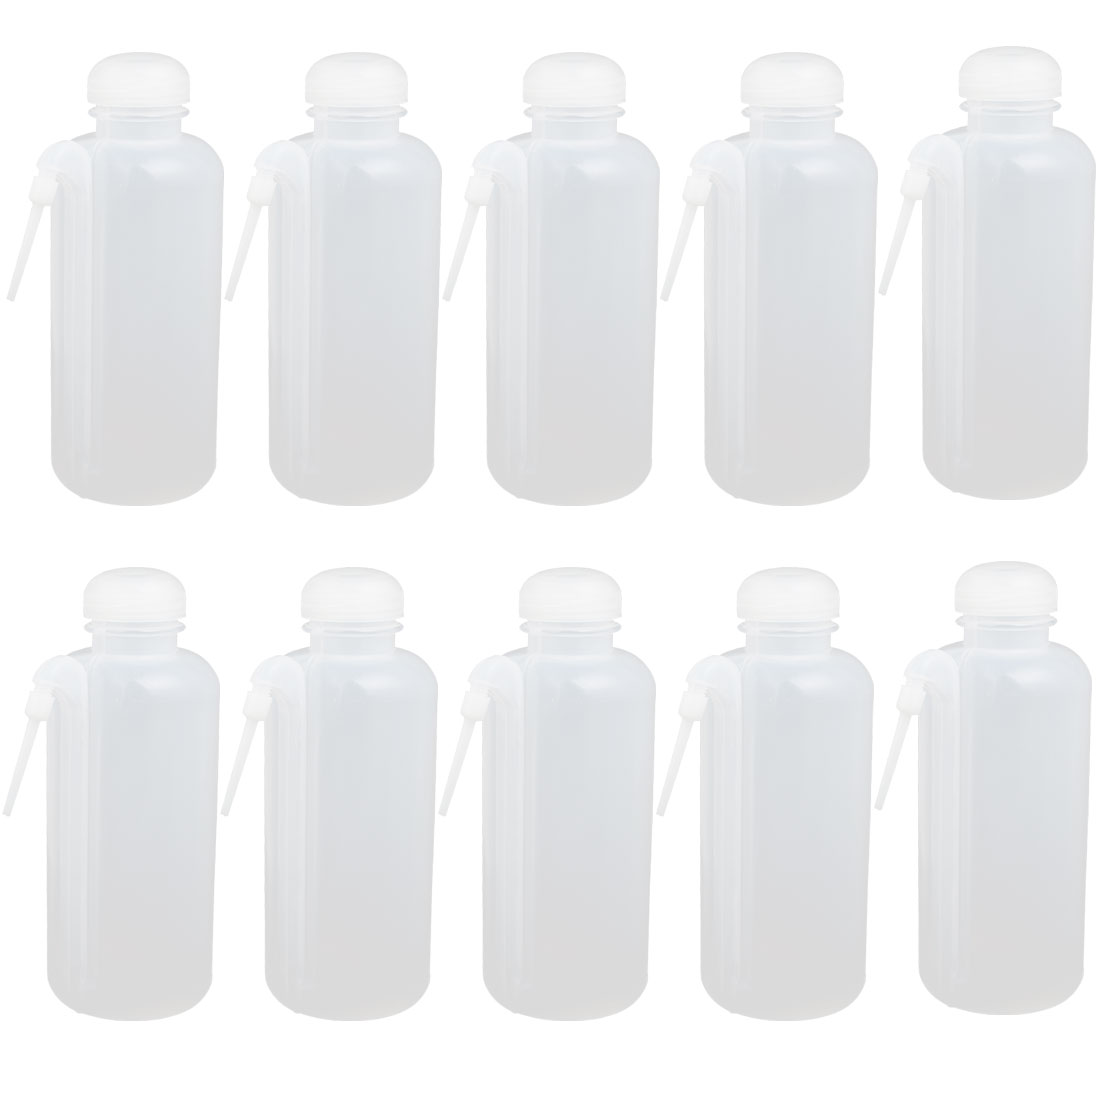 10pcs 500ml Clear White Cylindrical Spray Squeeze Washing Bottle Dispenser